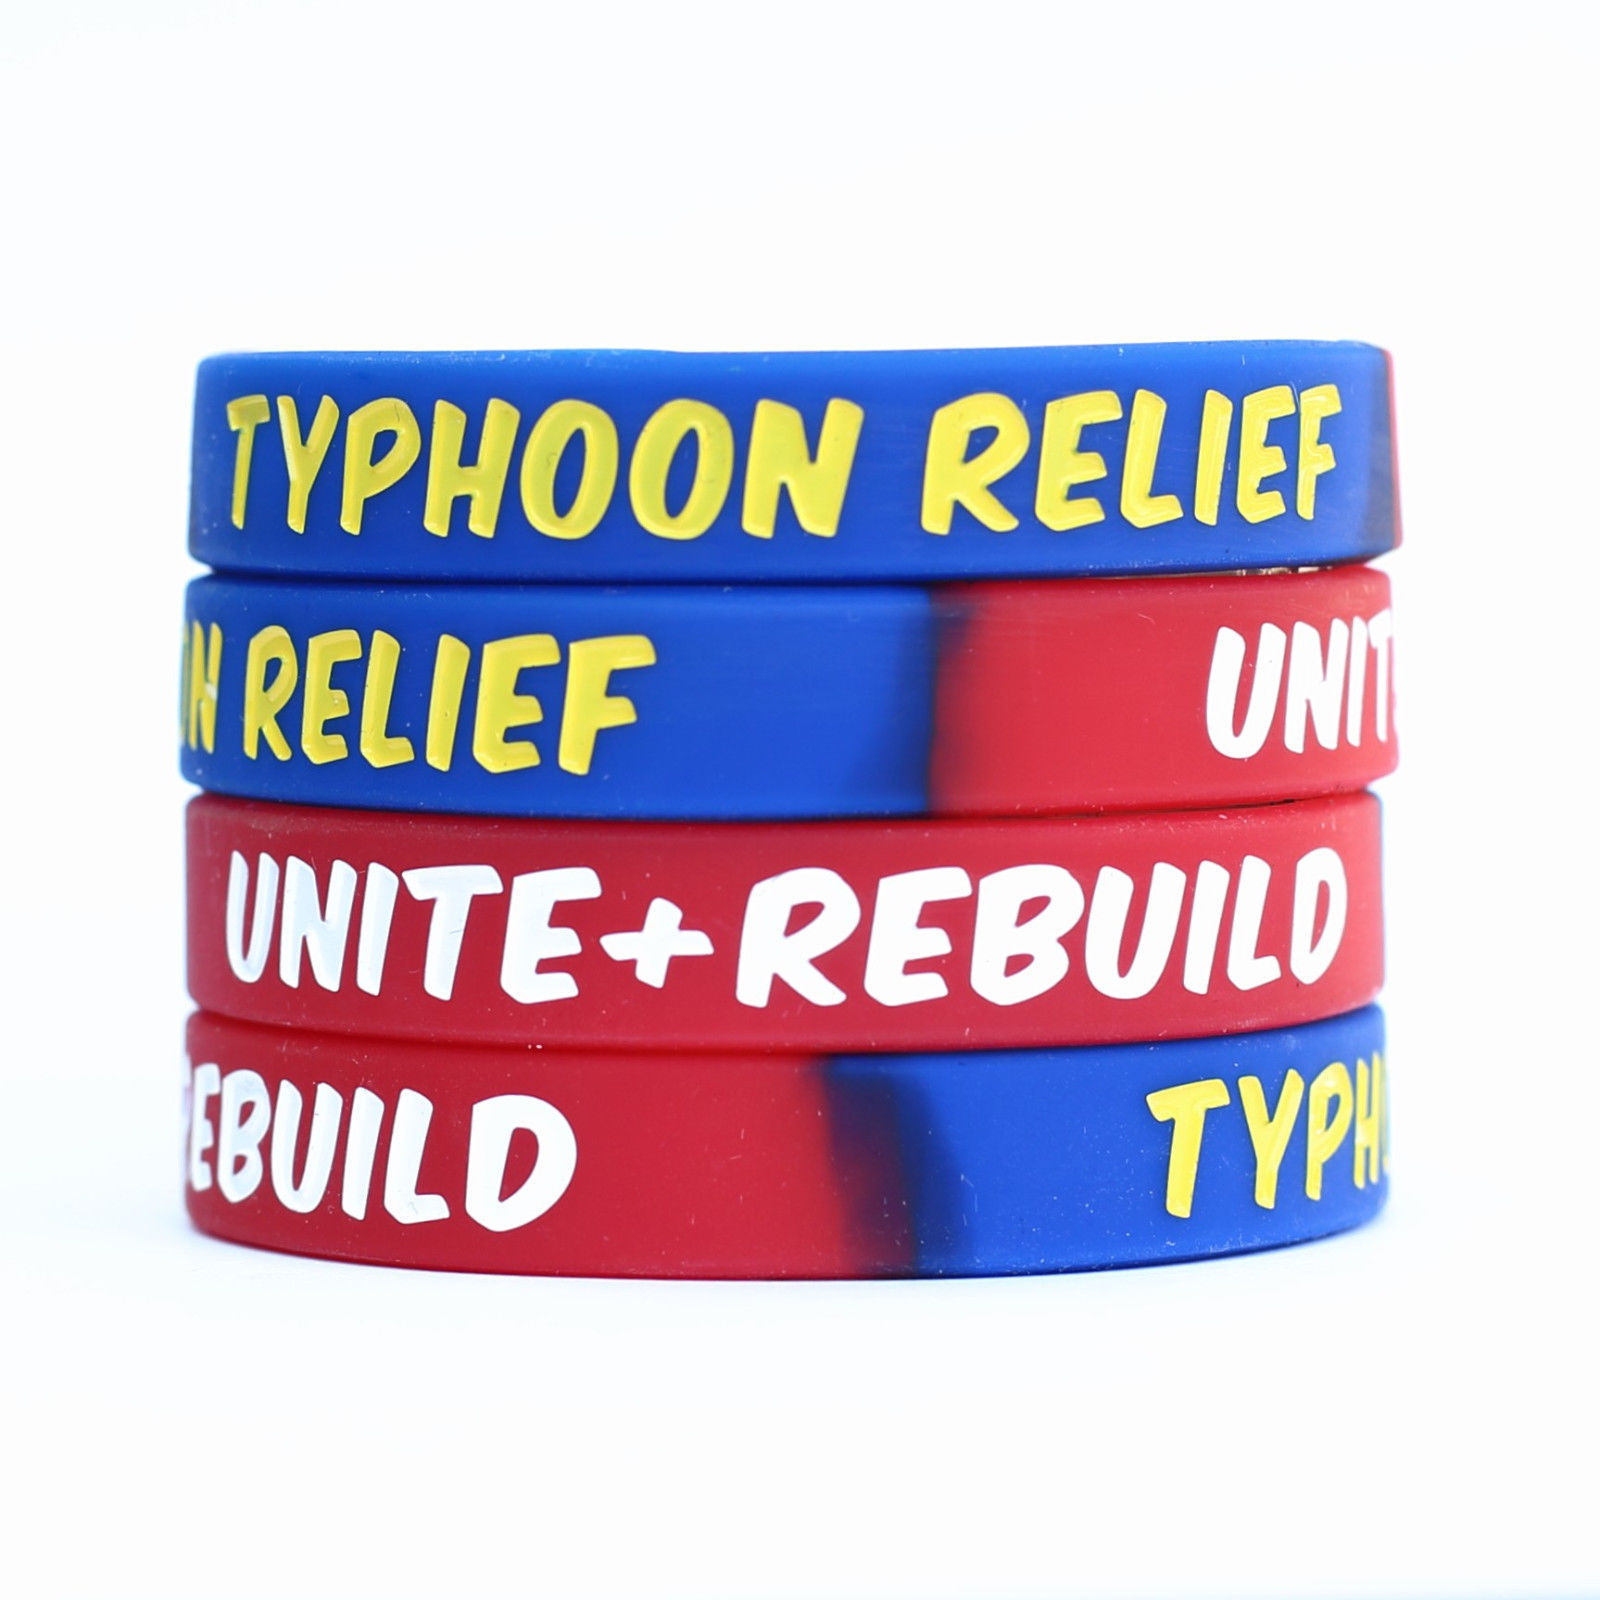 Primary image for 10 New Typhoon Relief Wristbands - Unite and Rebuild Awareness Bracelet Bands